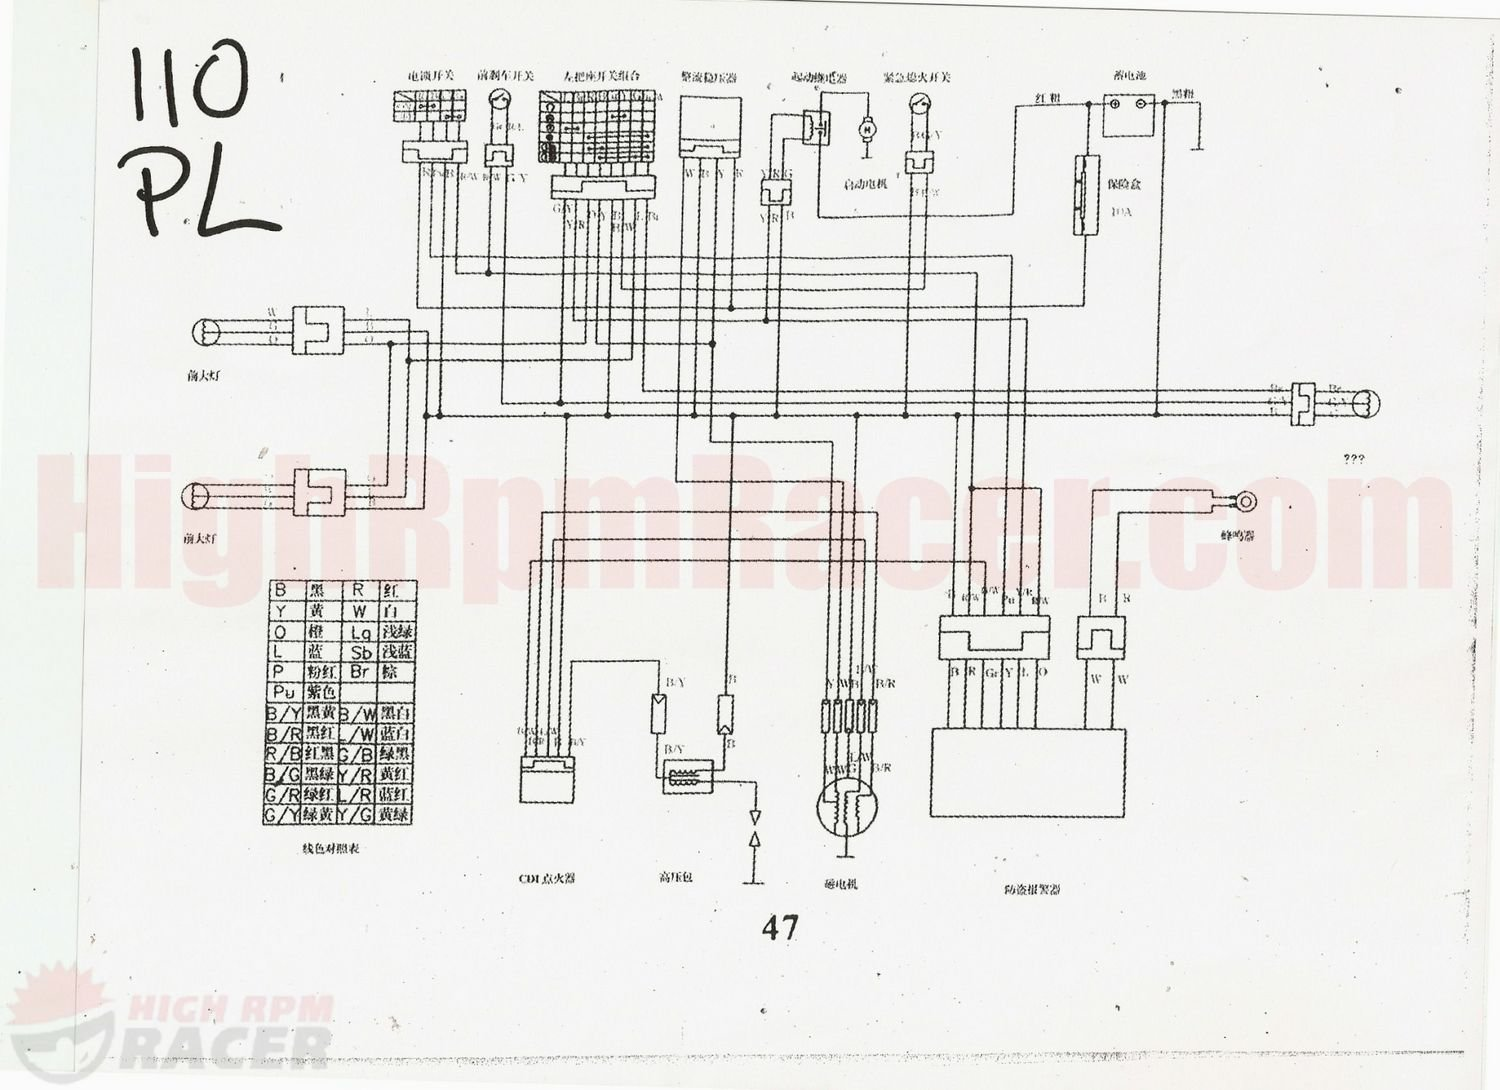 panther110pl_wd panther atv 110pl wiring diagram $0 00 2006 baja 90 atv wiring diagram at eliteediting.co